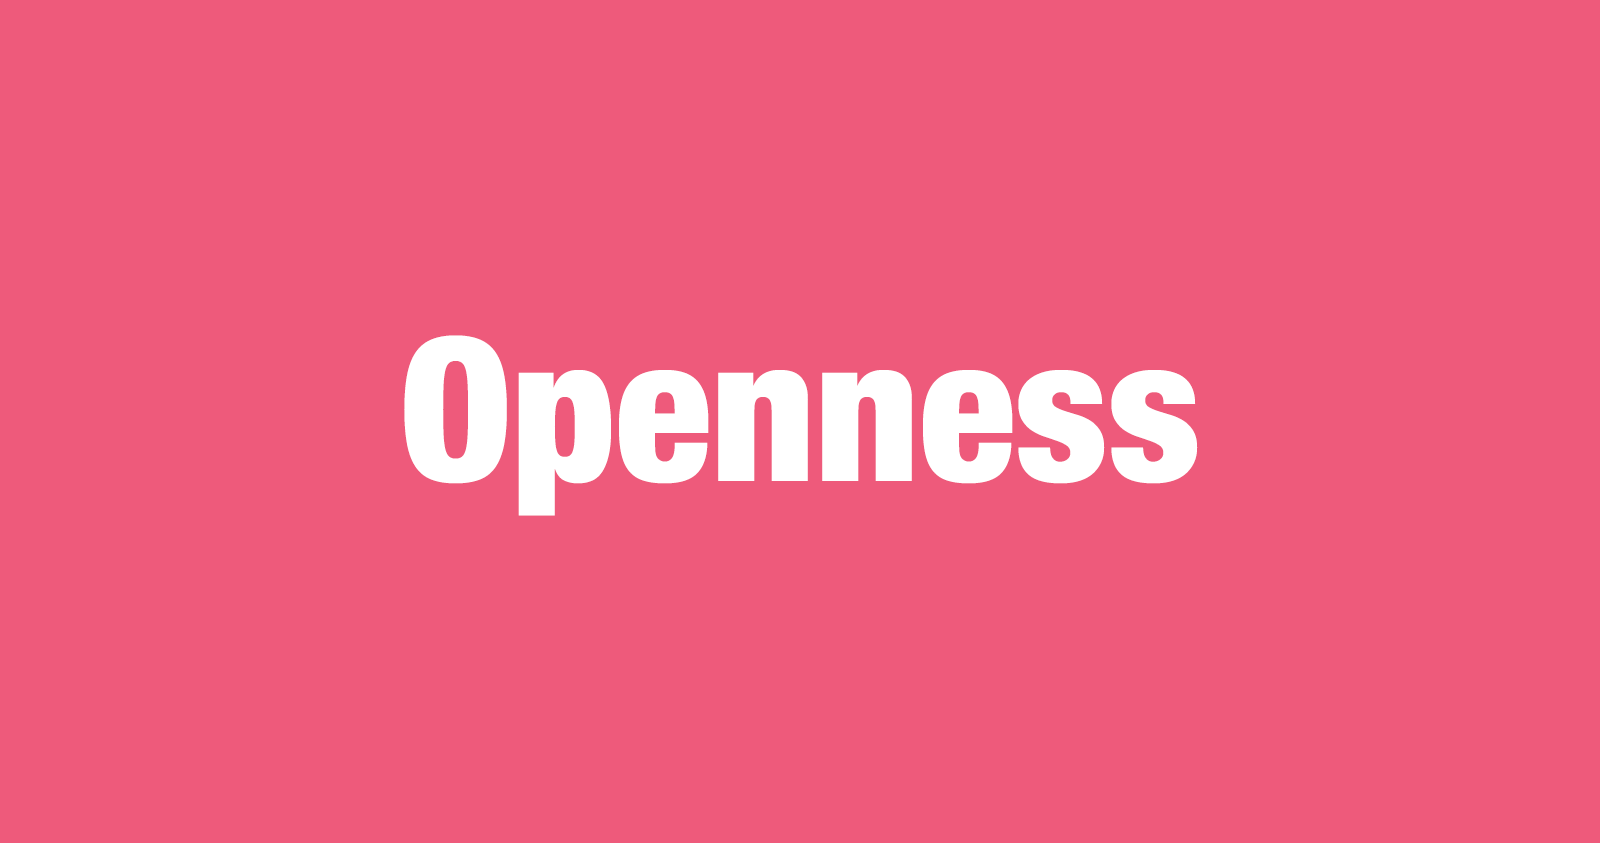 What is Openness?